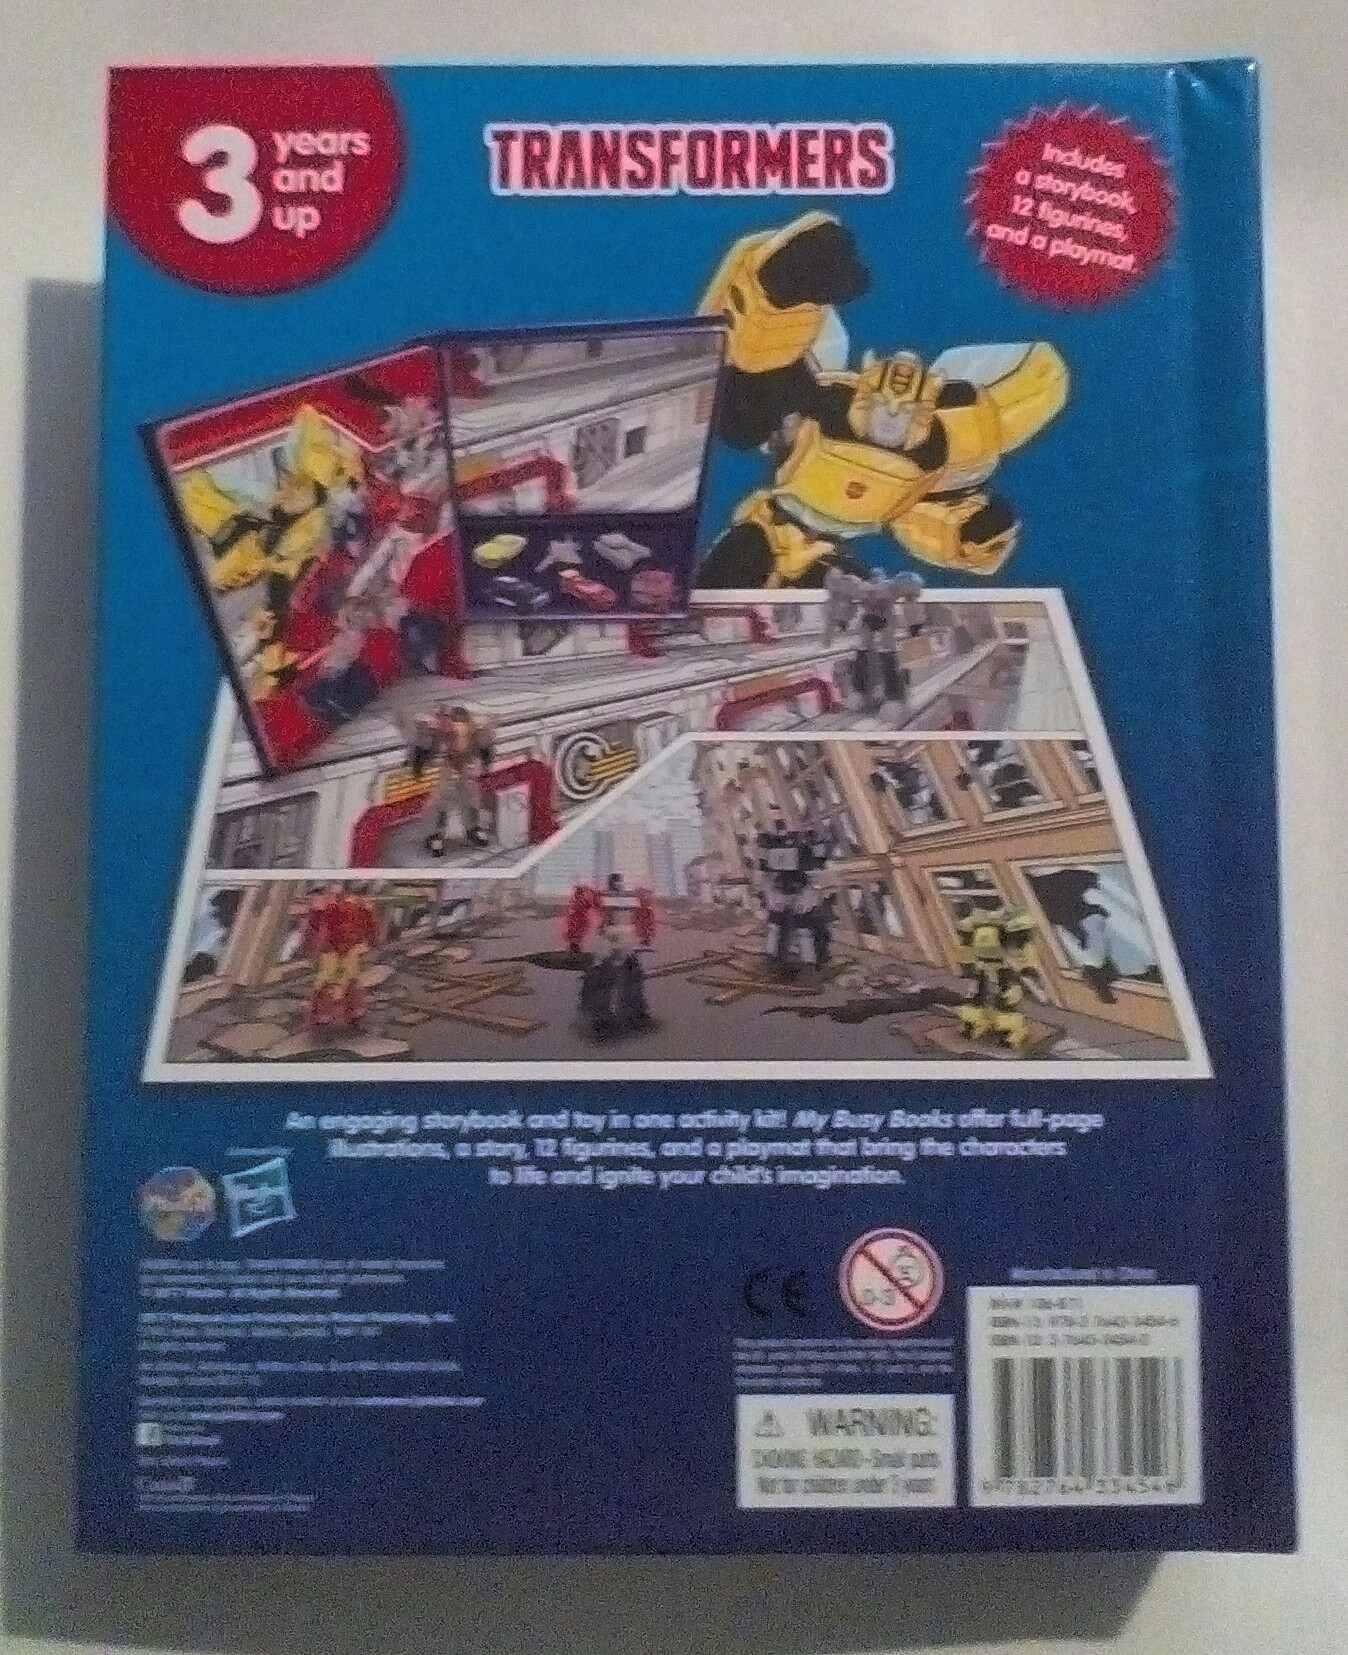 We Car: Transformers My Busy Book Spotted In UK